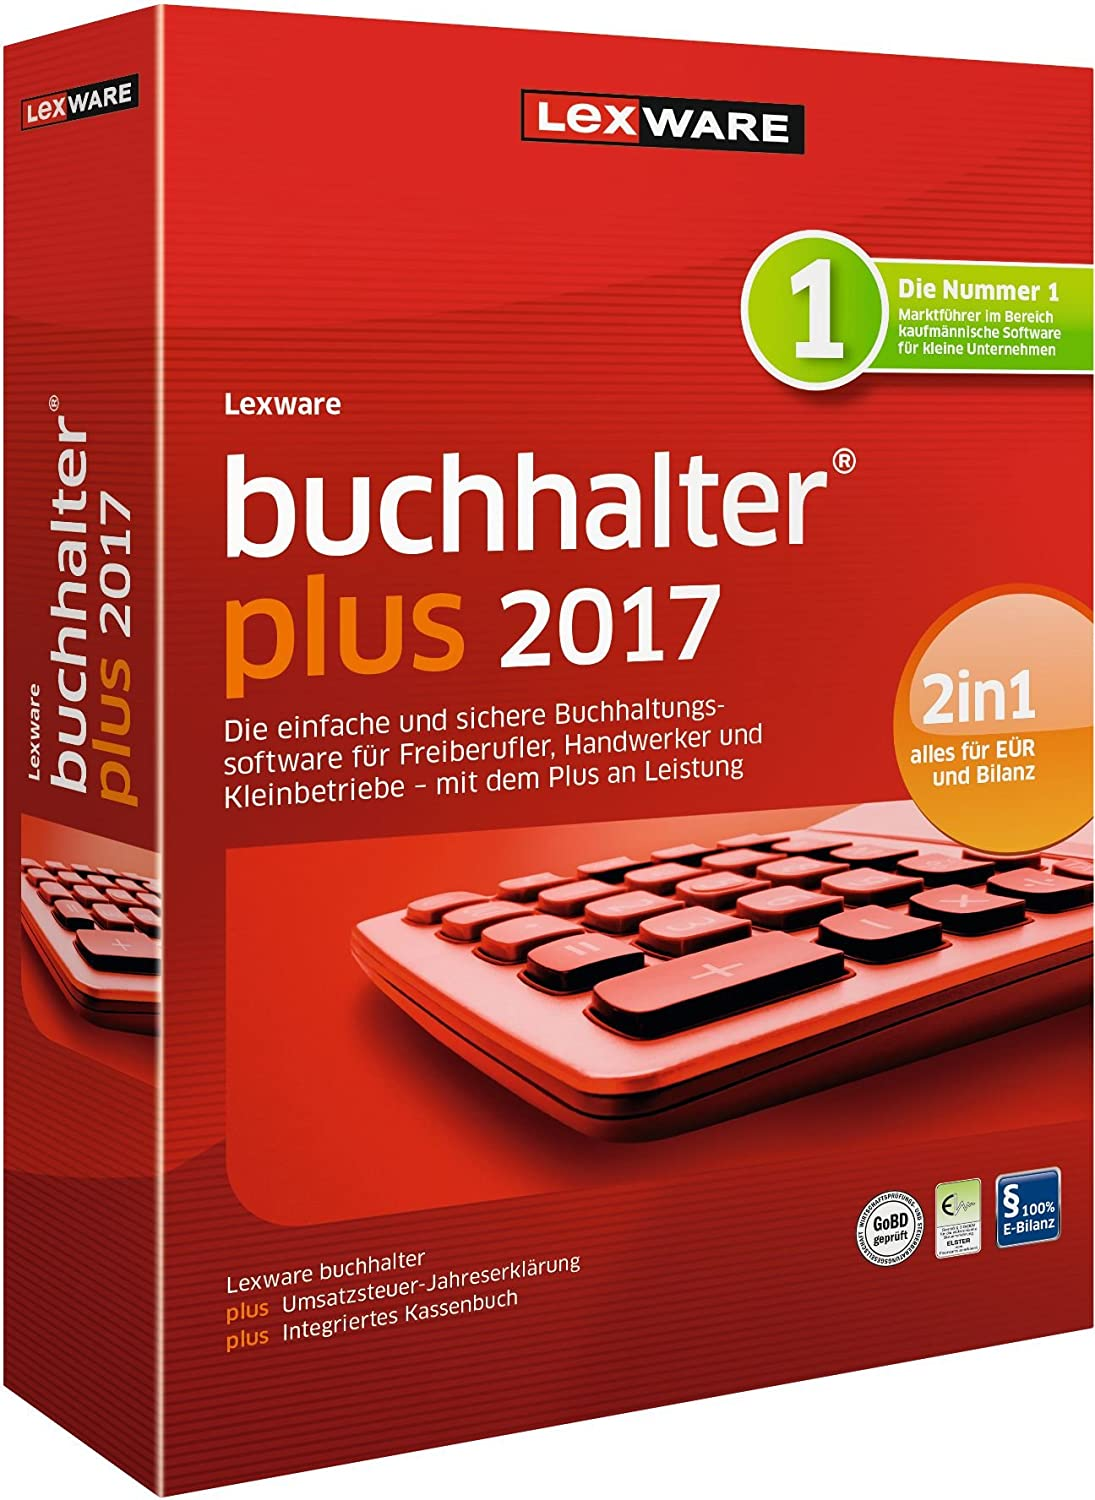 lexware buchhalter plus 2014 download